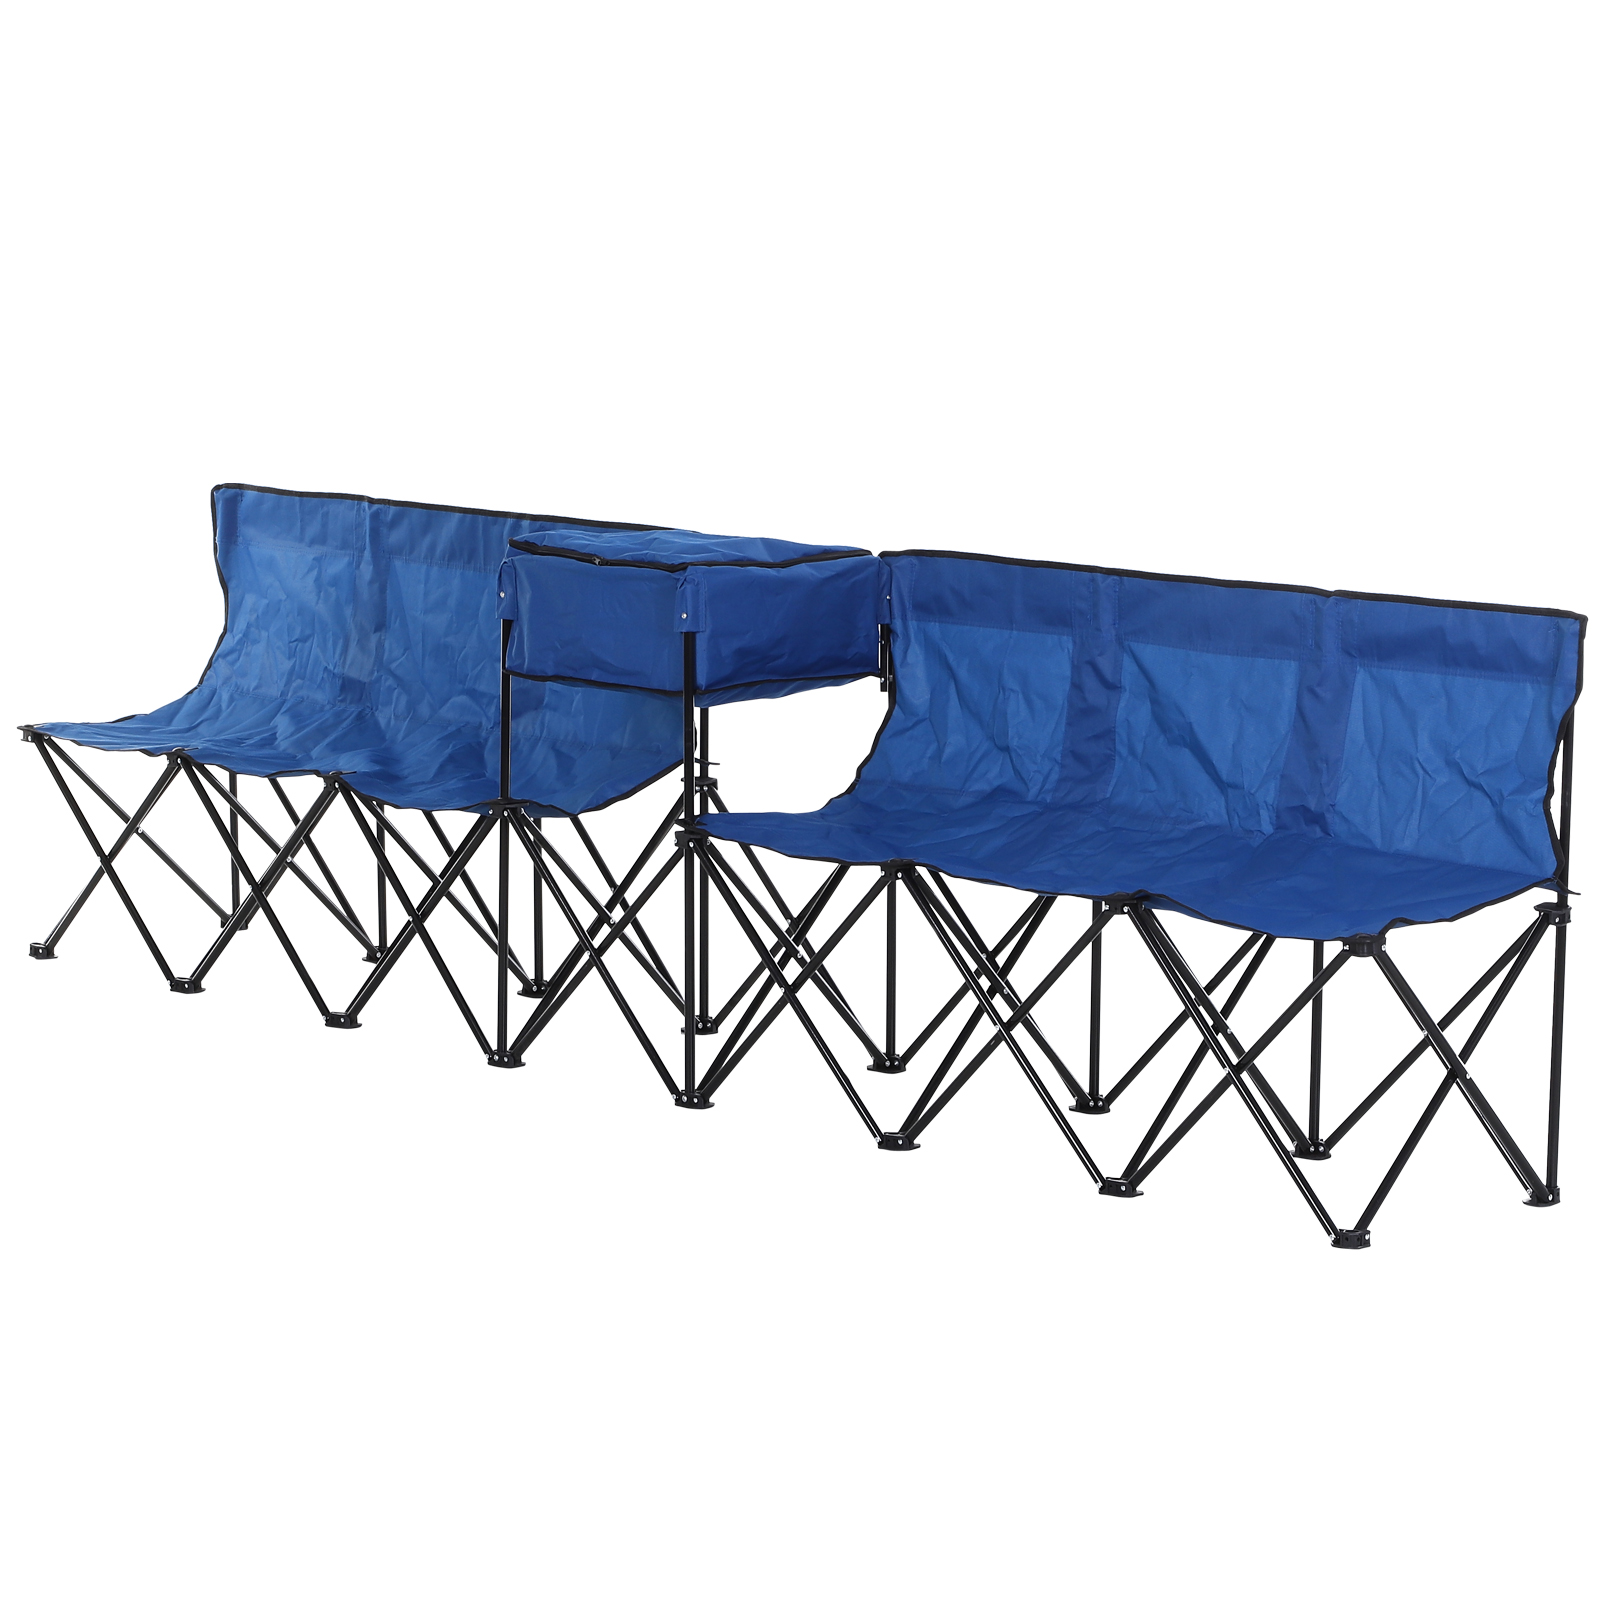 Outsunny 6-Seater Folding Steel Camping Bench w/ Cooler Bag Blue